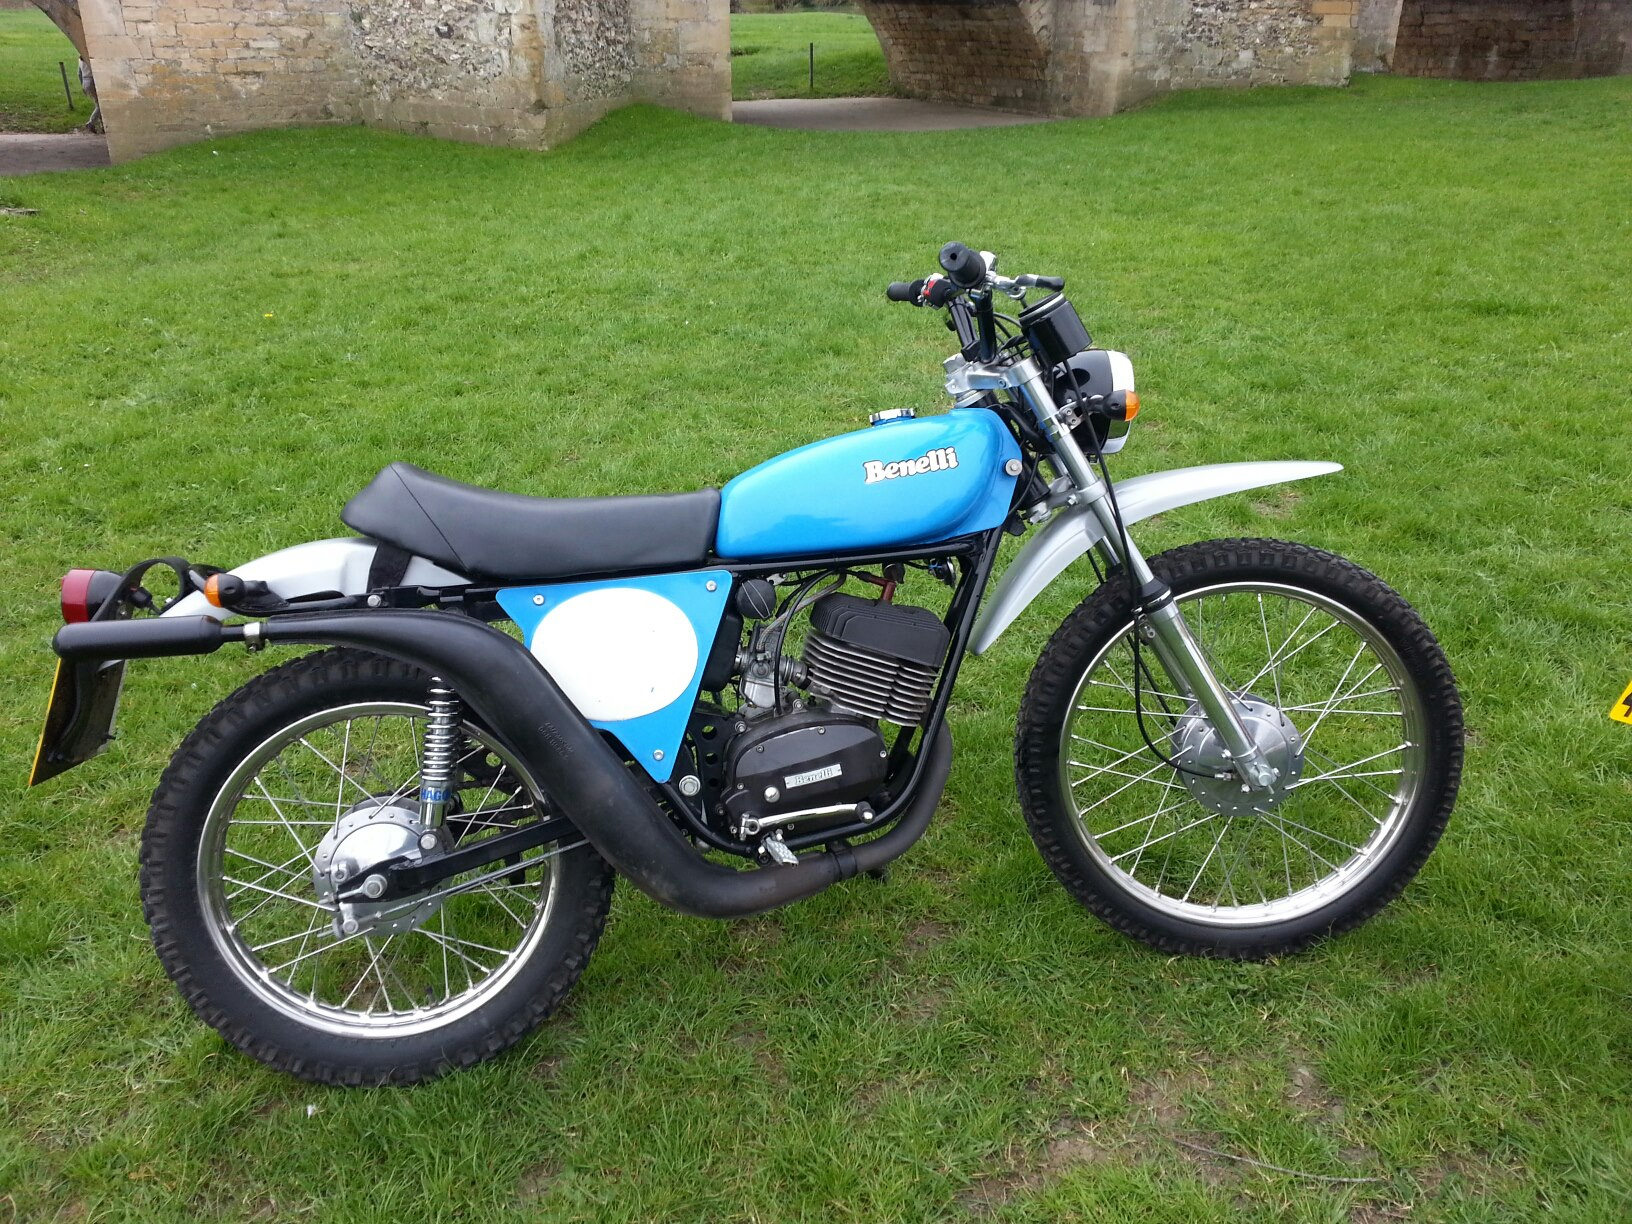 benelli 125 cross project parts help please-img_0016.jpg